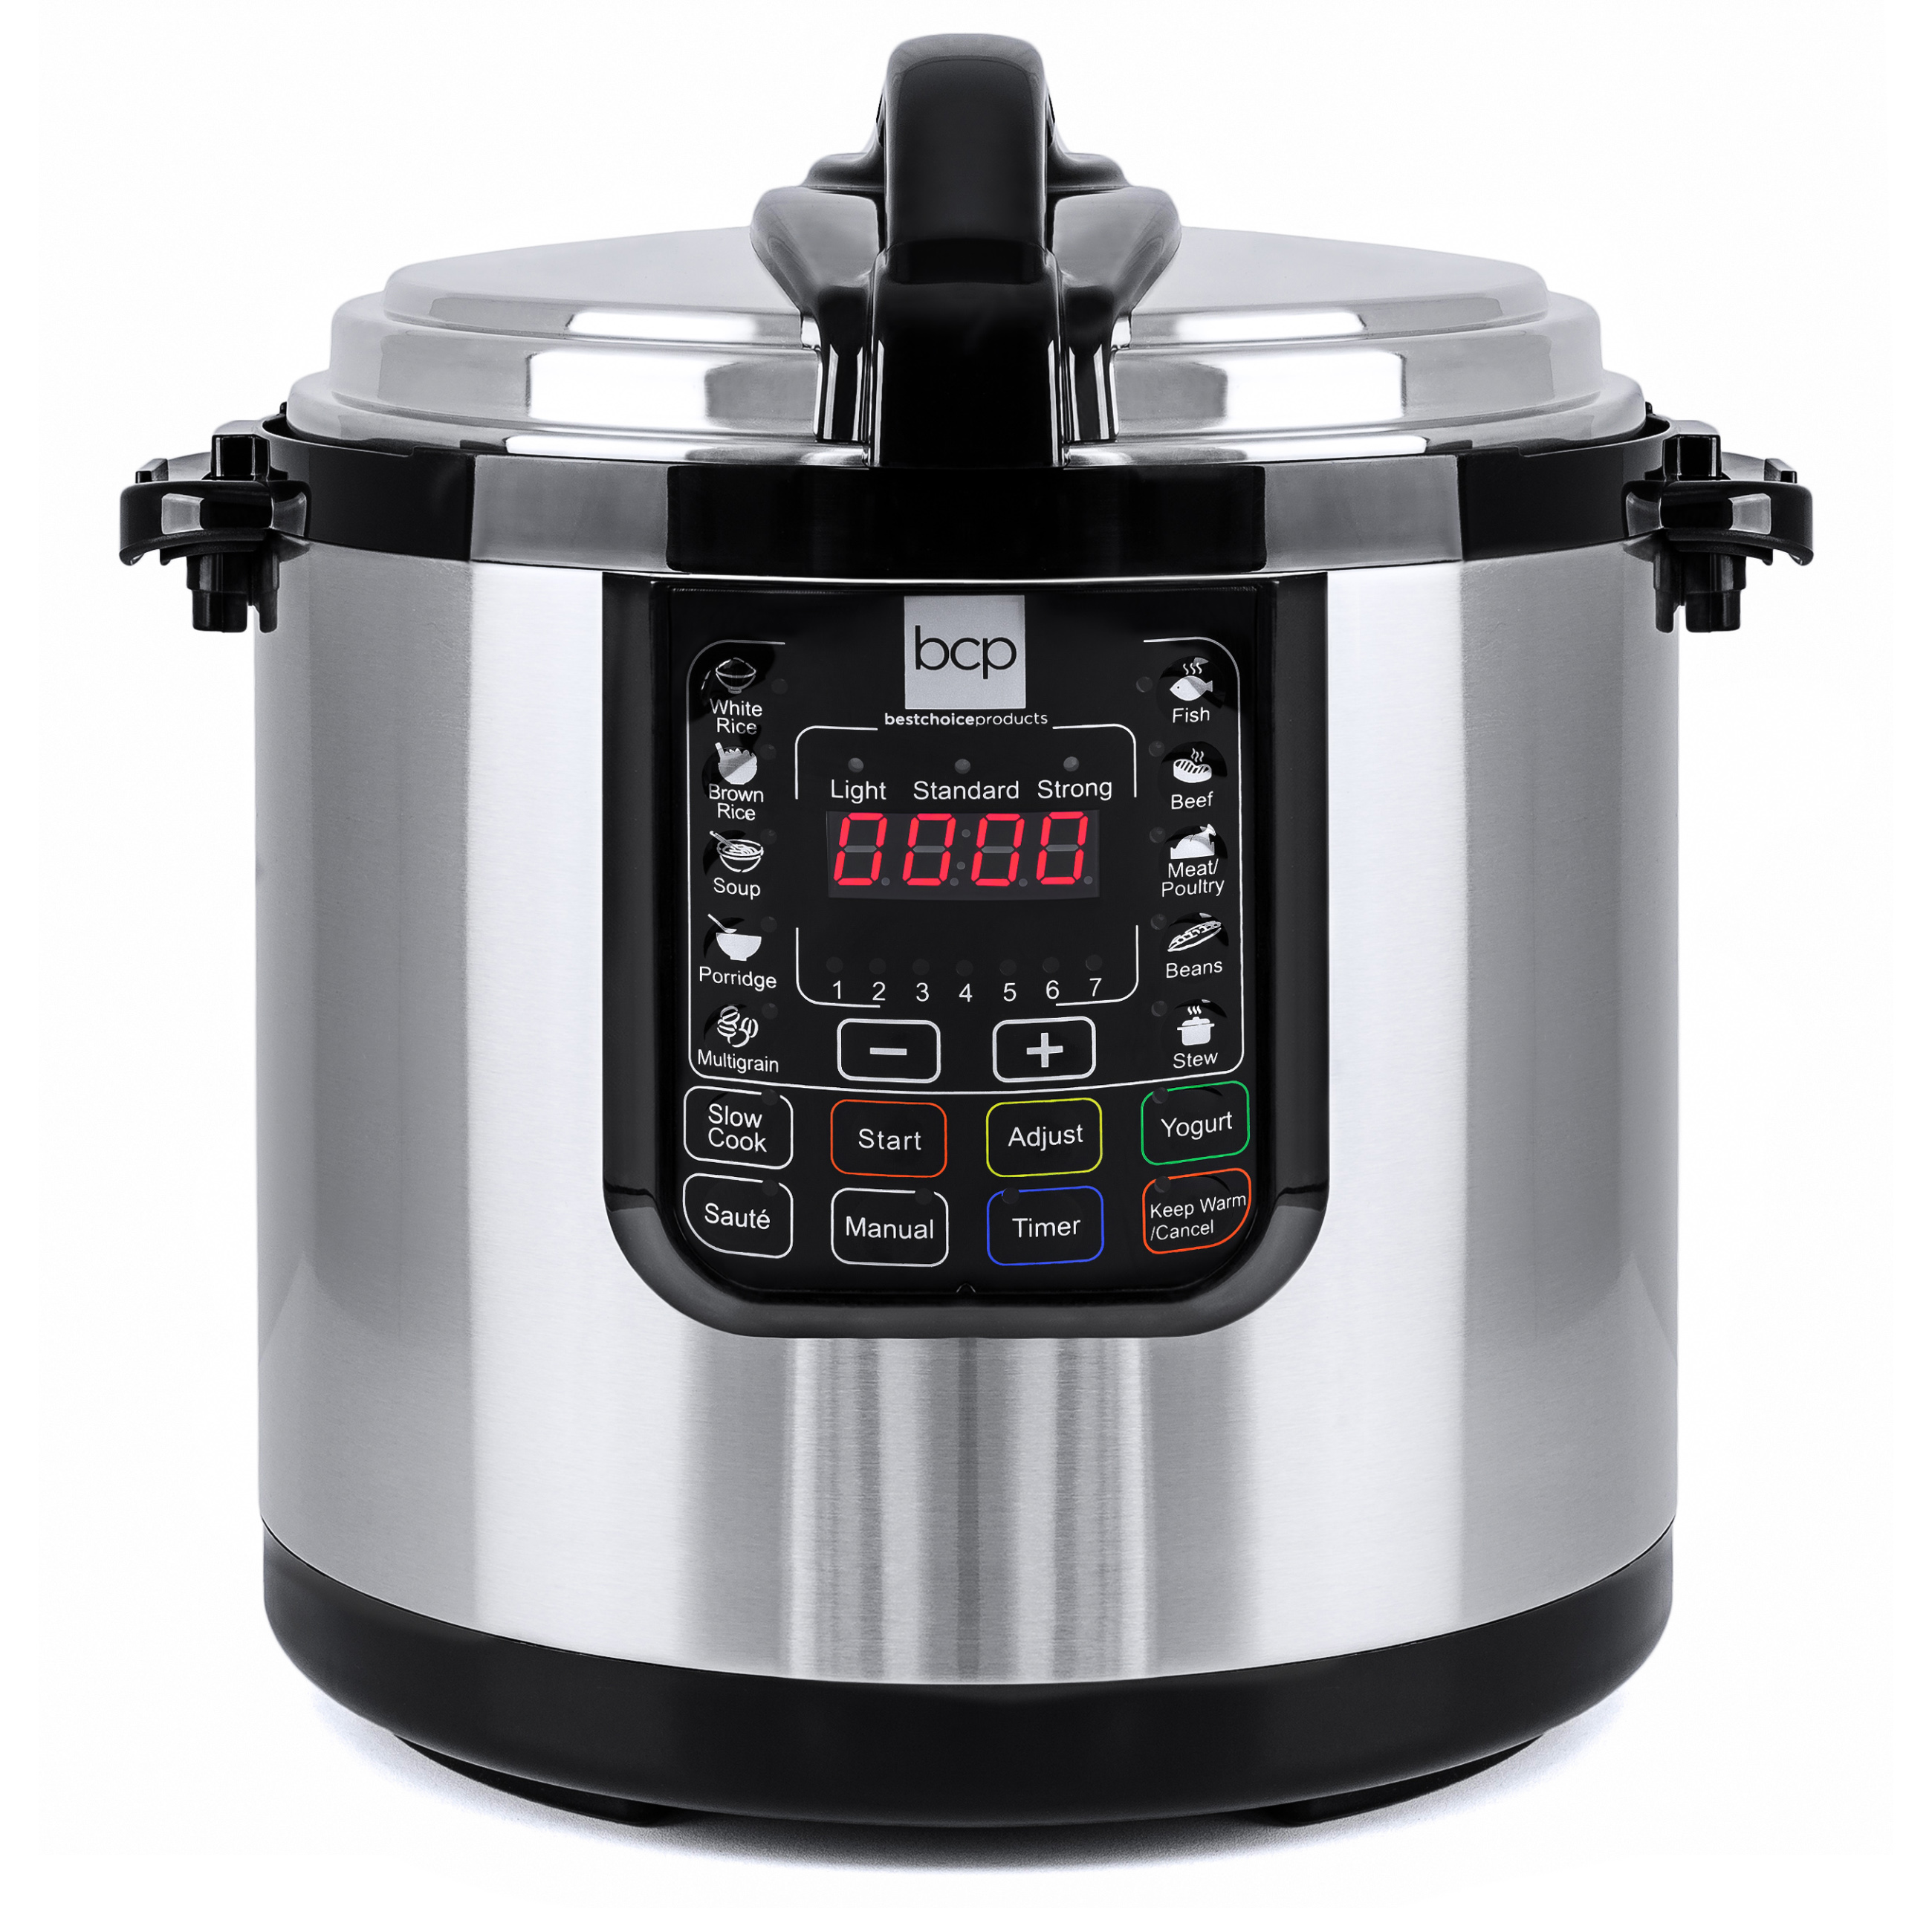 Best Choice Products 12L 1000W Multifunctional Stainless Steel Electric Pressure Cooker w/ LED Display Screen - Silver